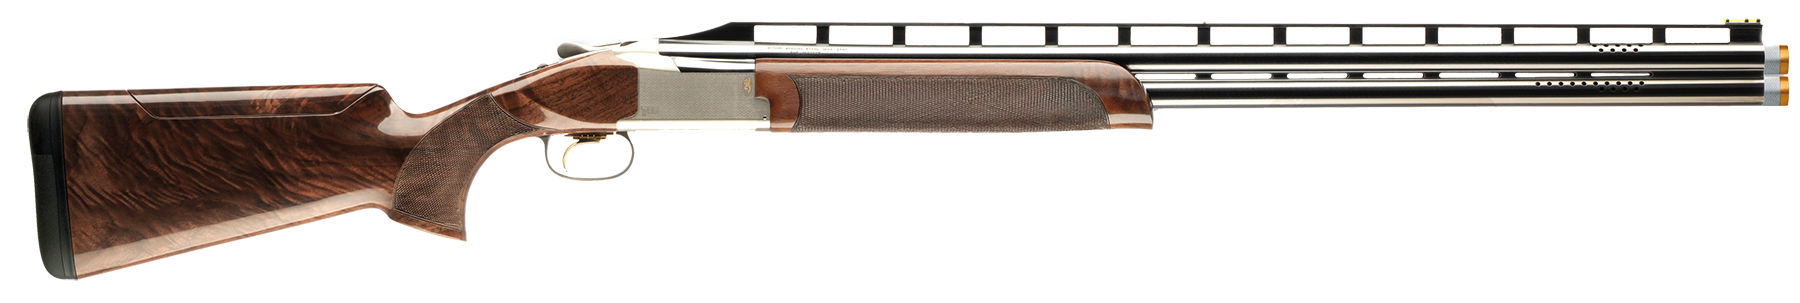 Browning Citori 725 High Rib Sporting Over/Under Shotgun 3'' 12 Gauge 32'' Silver Nitride Steel/Blued Barrel - Black Walnut Adjustable Comb